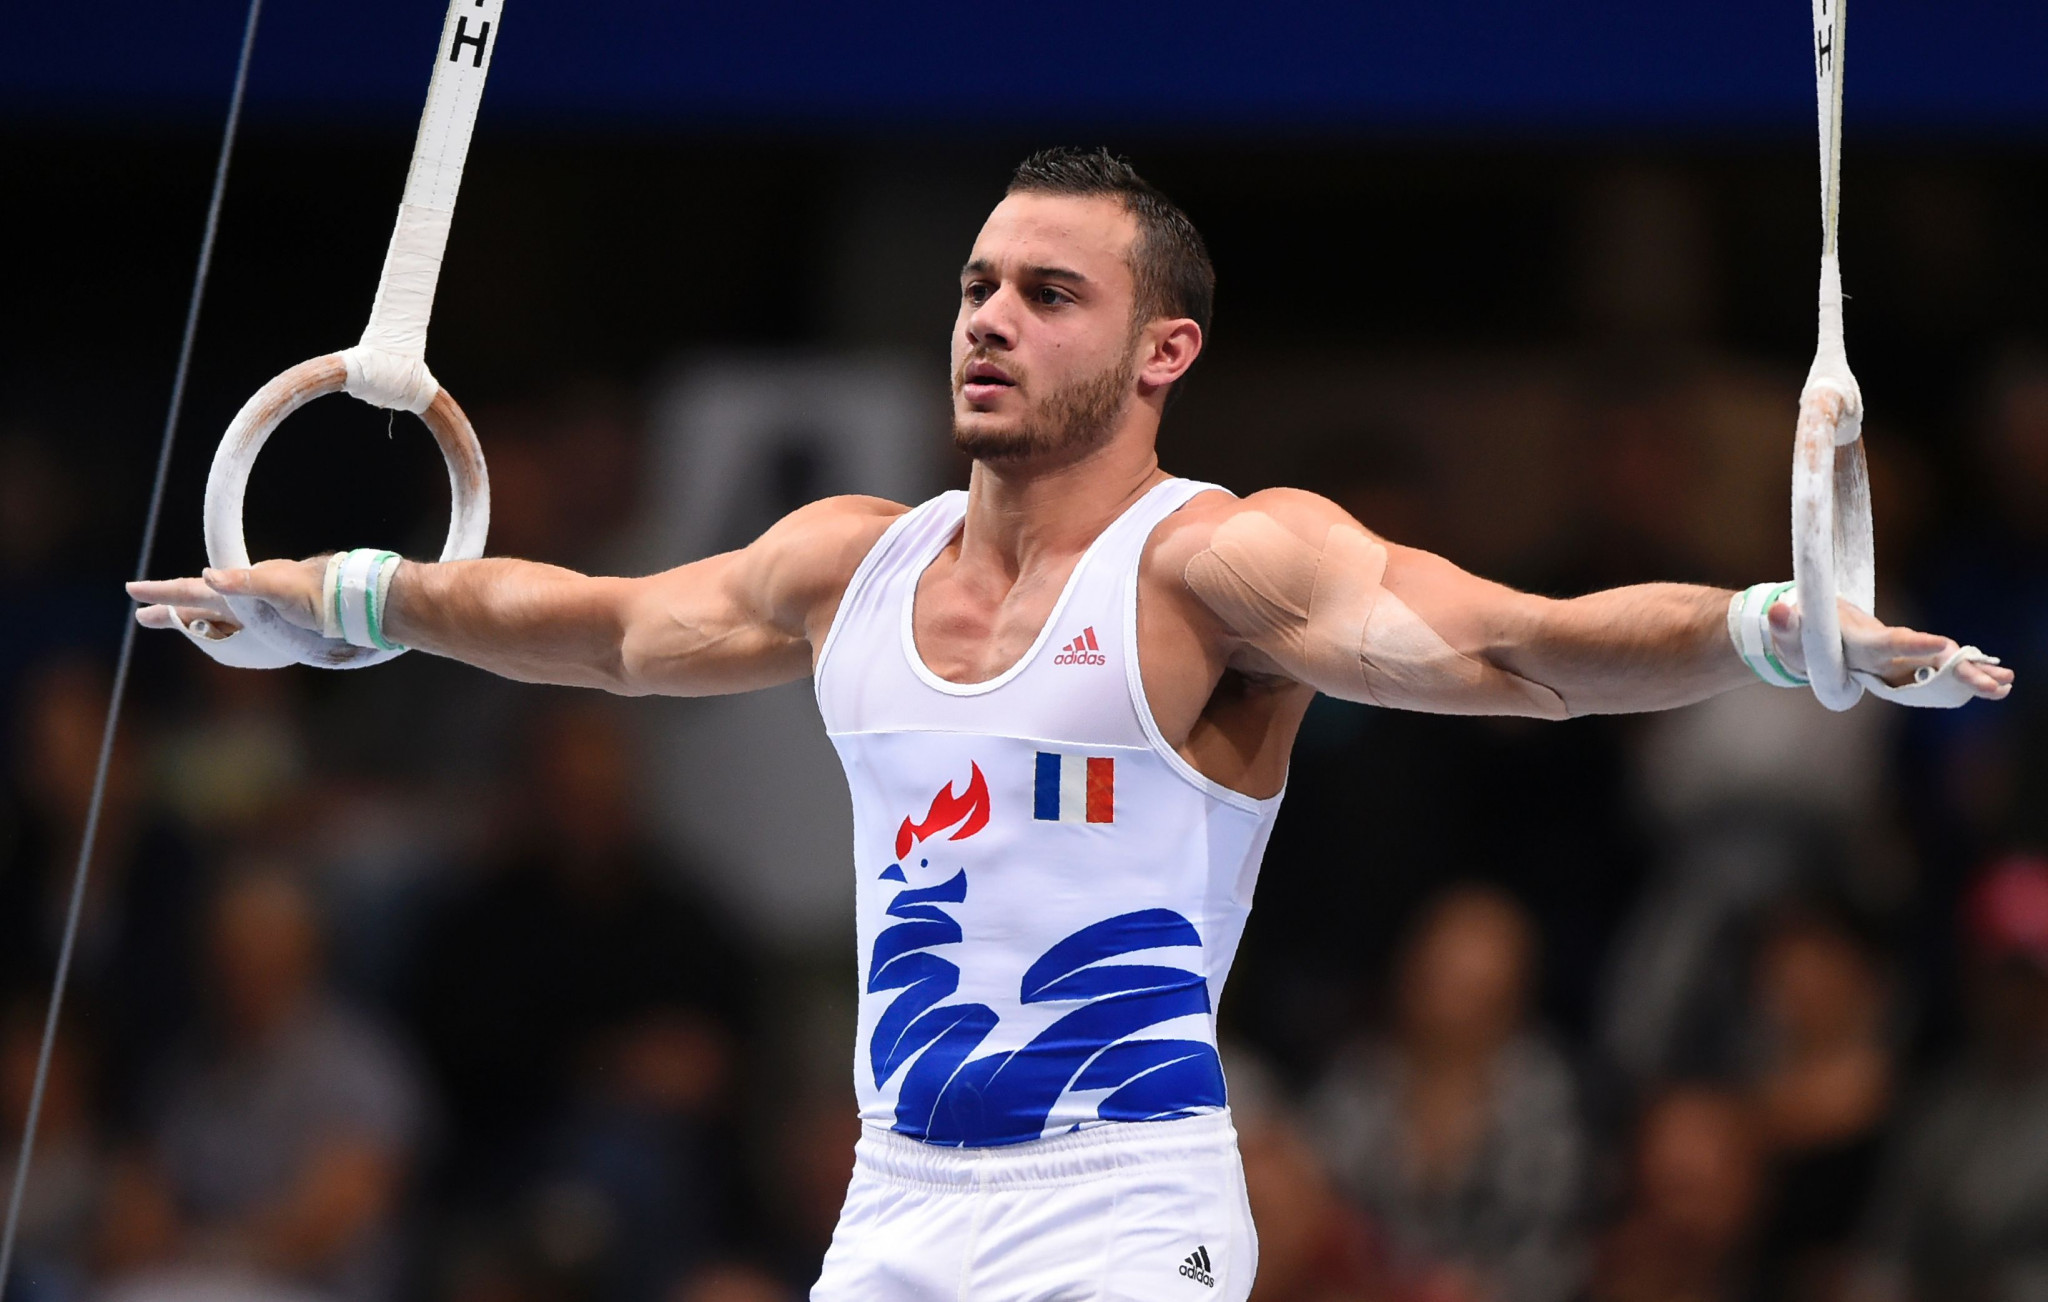 Hosts celebrate multiple victories at FIG World Challenge Cup Series in Paris